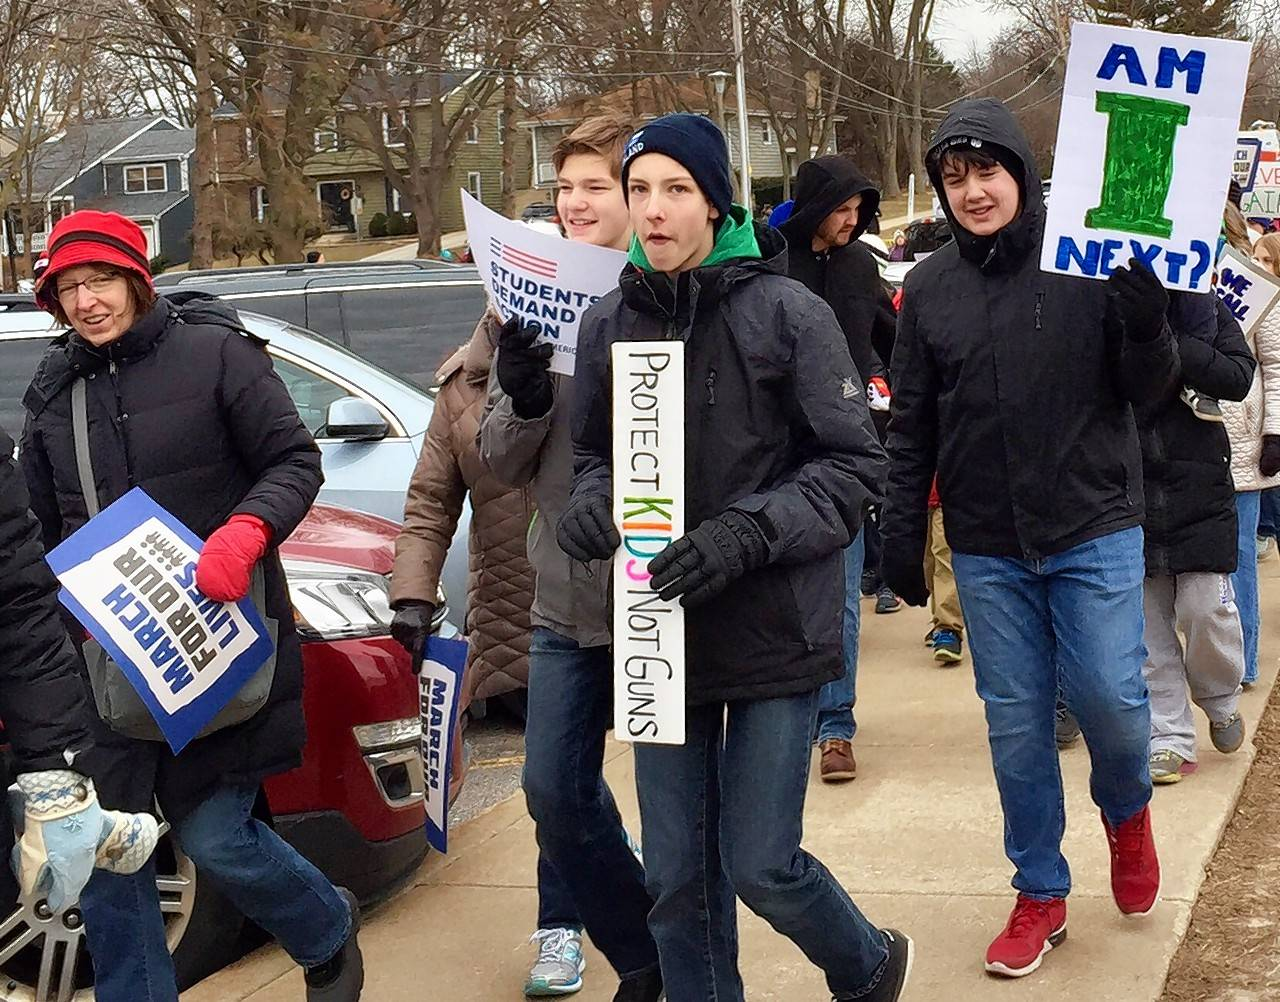 More than 1,000 people attended a gun violence protest Saturday in Glen Ellyn. It was among many going on in the Chicago area, with hundreds more around the world.